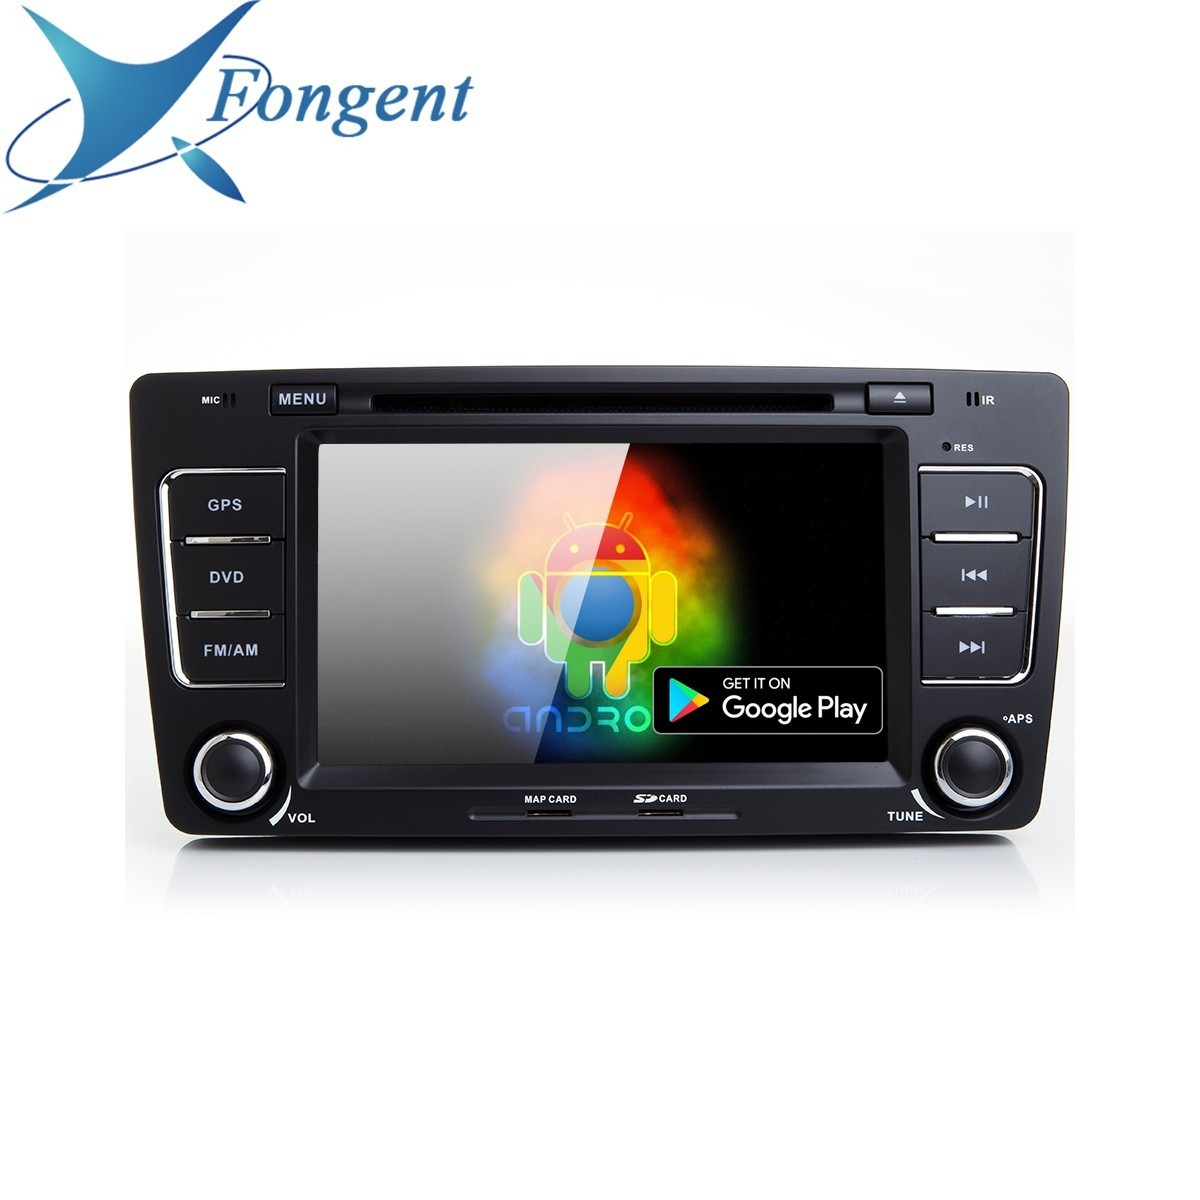 Car <font><b>Android</b></font> 9.0 Head Unit for SKODA OCTAVIA 2009 2010 2011 2012 2013 2014 2015 radio Stereo Audio GPS Navi Map Multimedia Player image